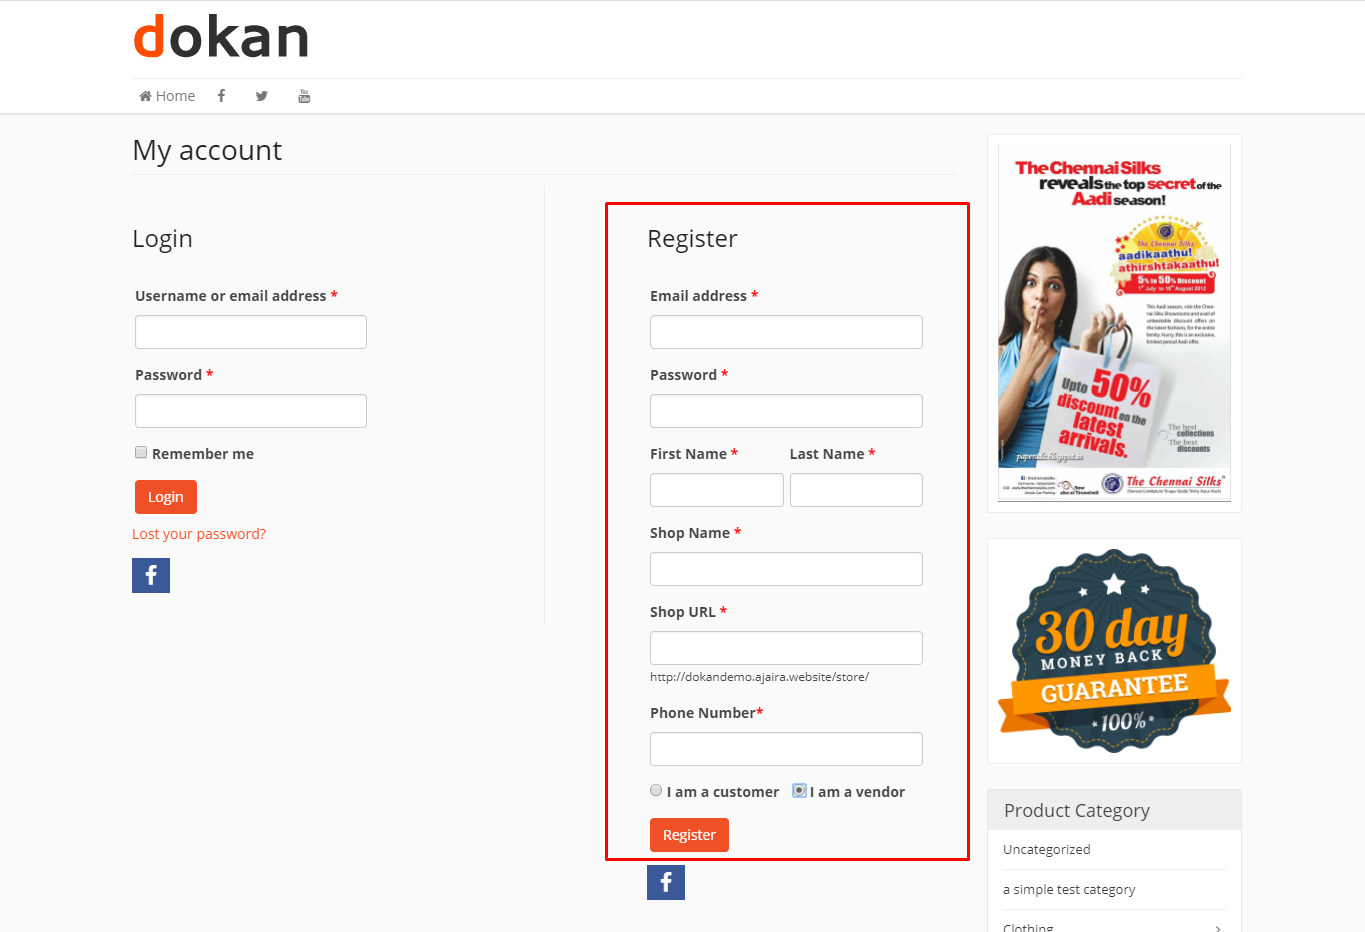 dokan registration form